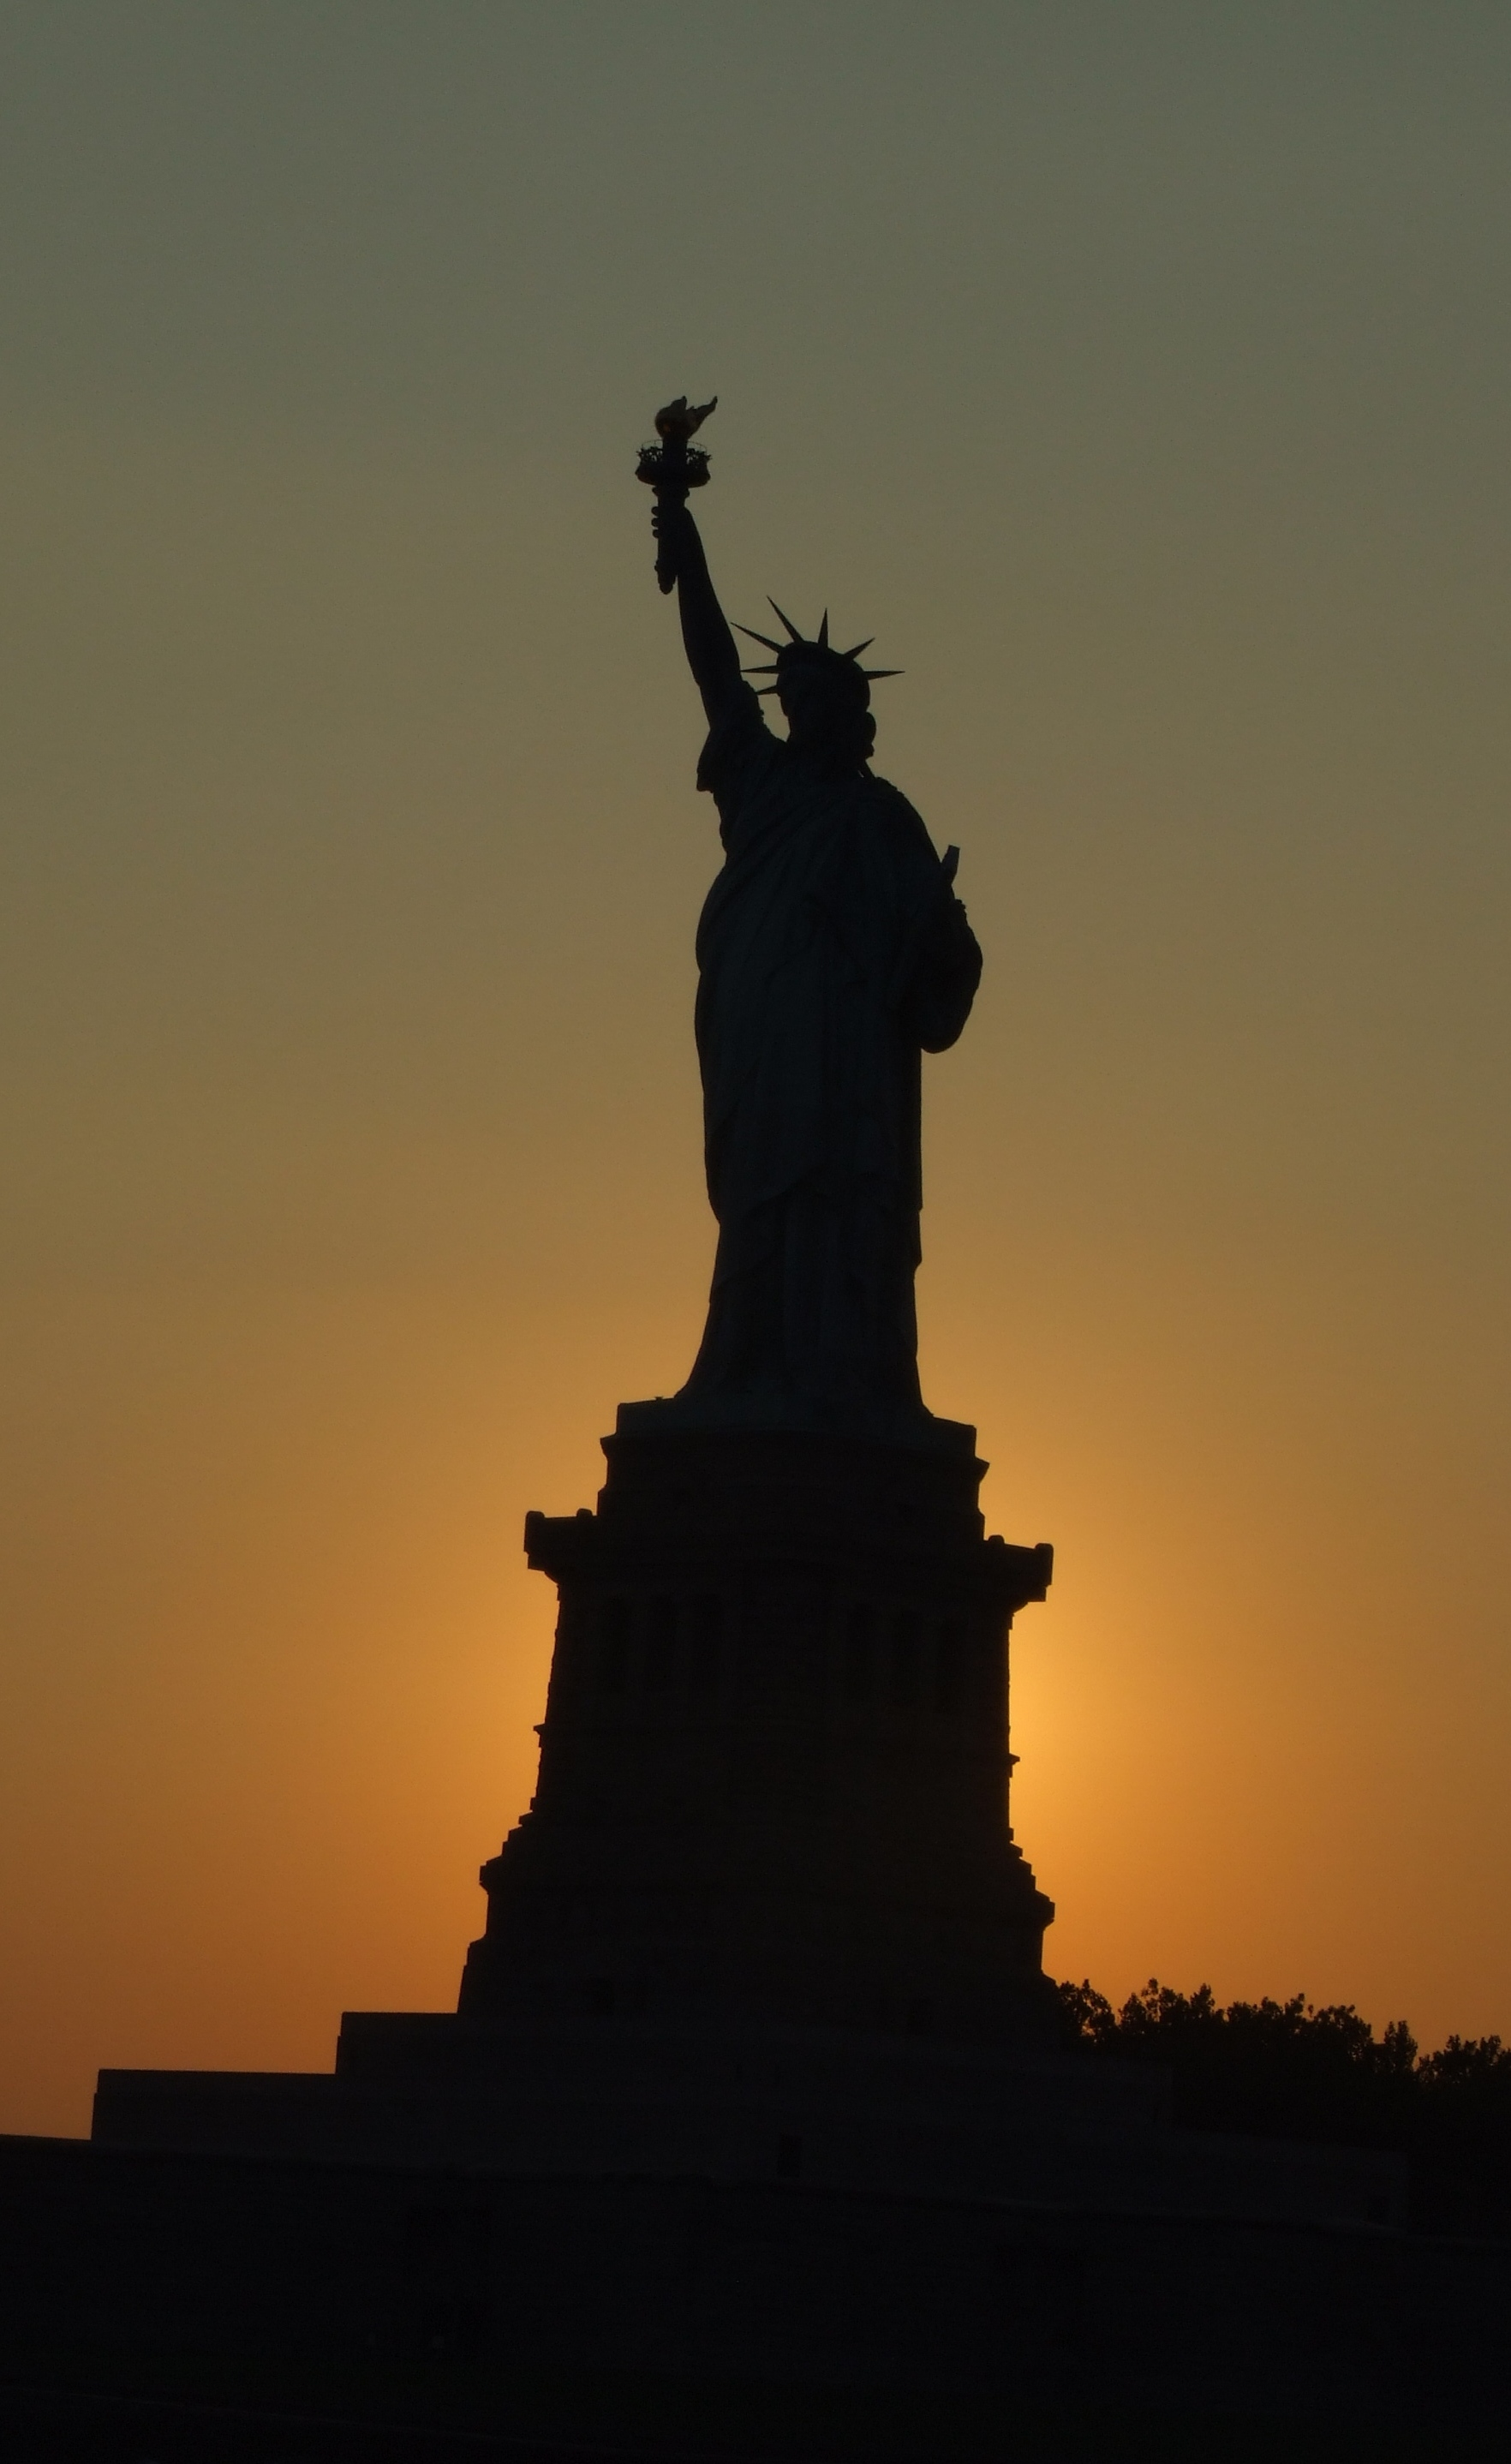 File:Sunset Statue of Liberty.jpg - Wikimedia Commons